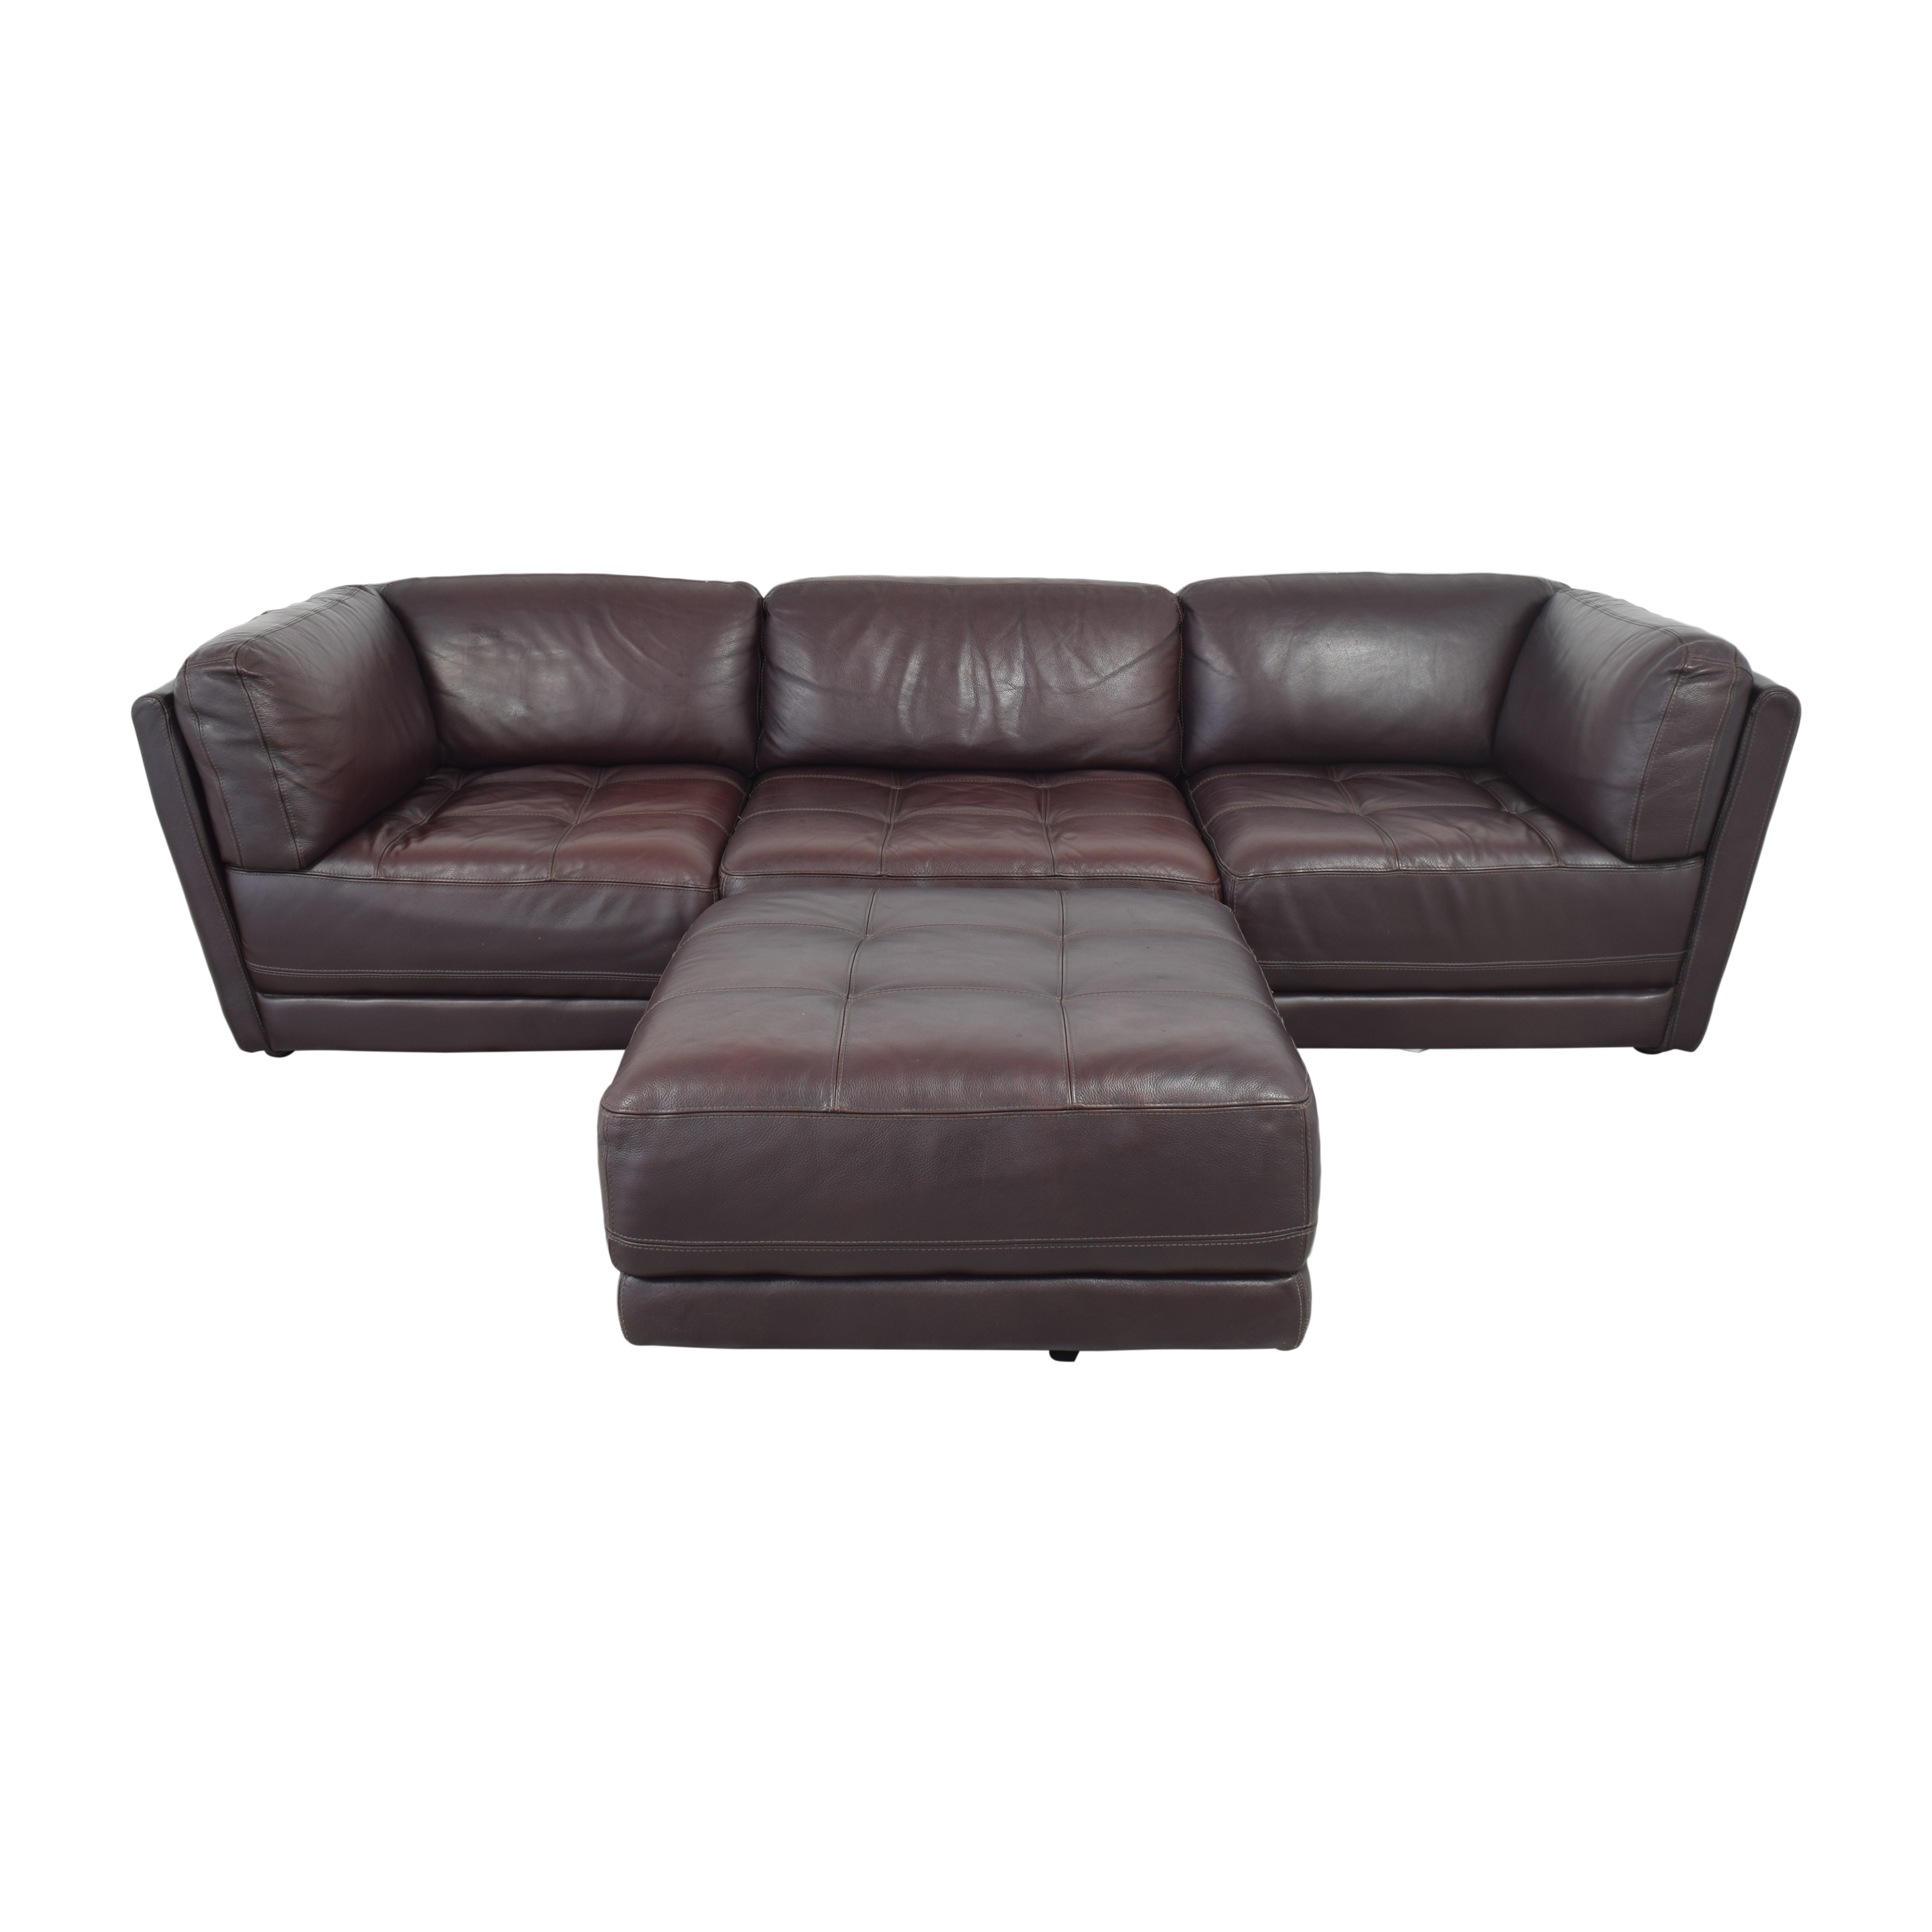 Raymour & Flanigan Raymour & Flanigan Tufted Sectional Sofa dimensions